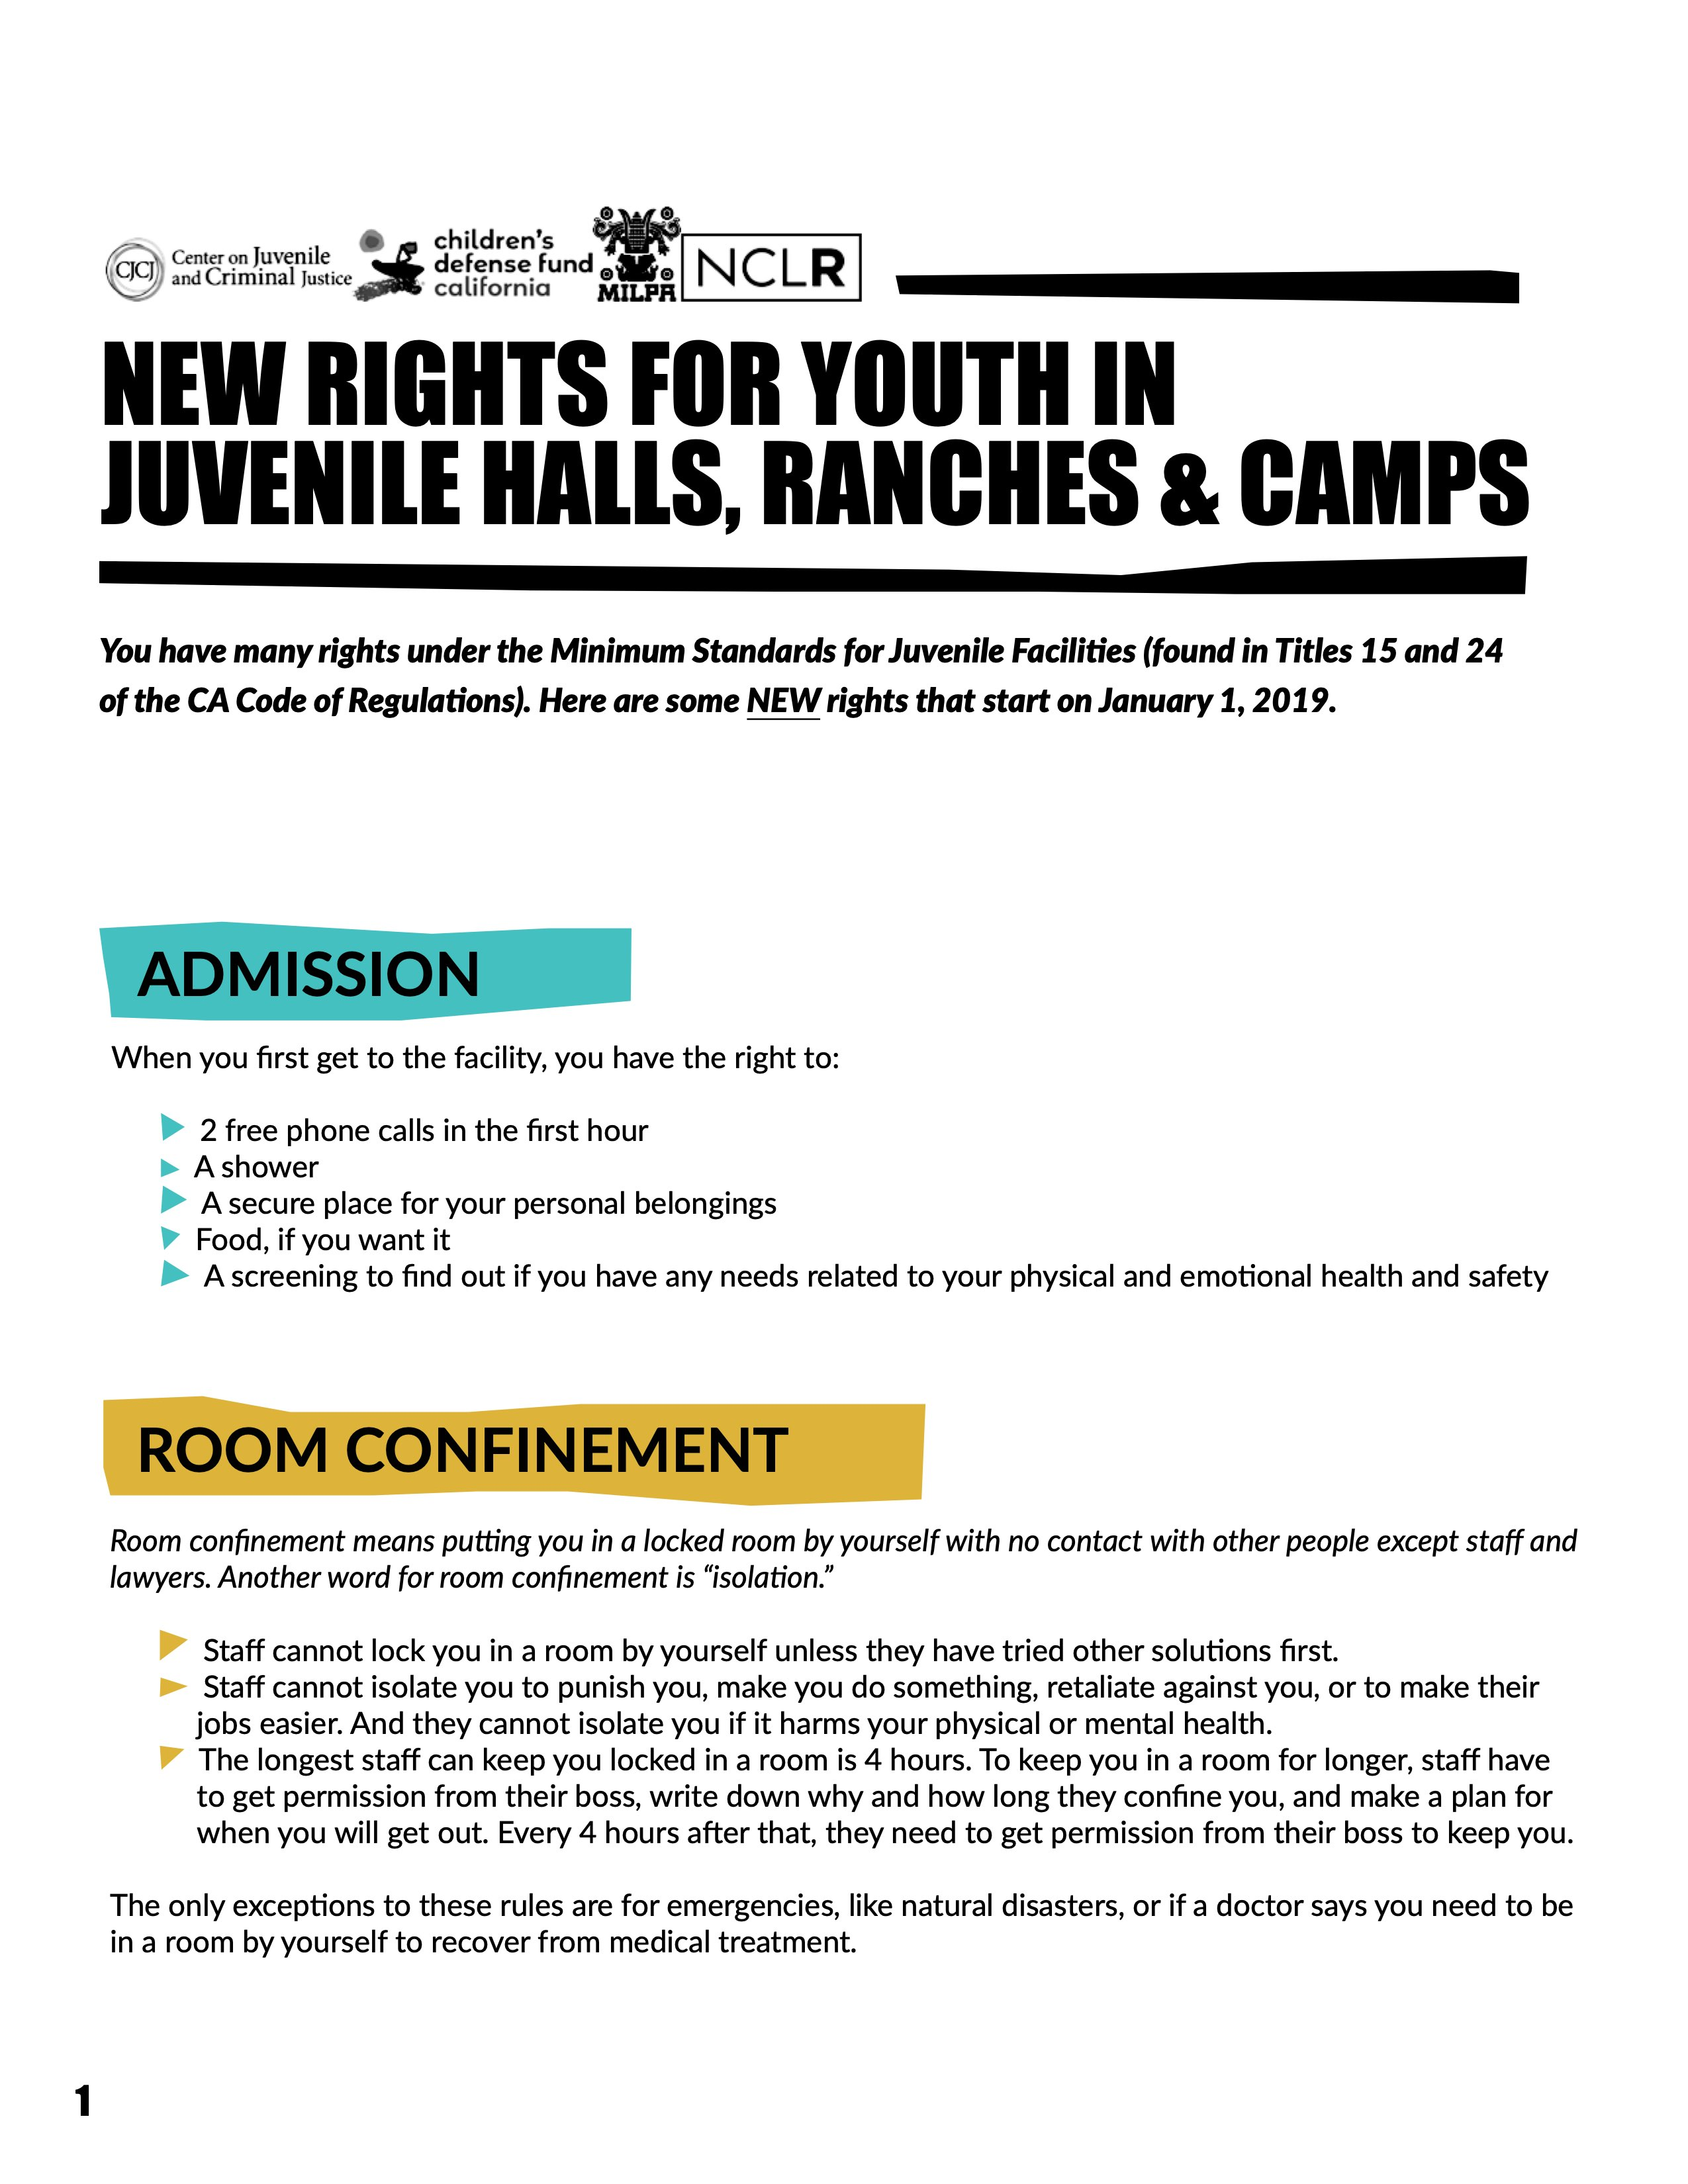 New Rights for Youth in Juvenile Halls, Camps & Ranches